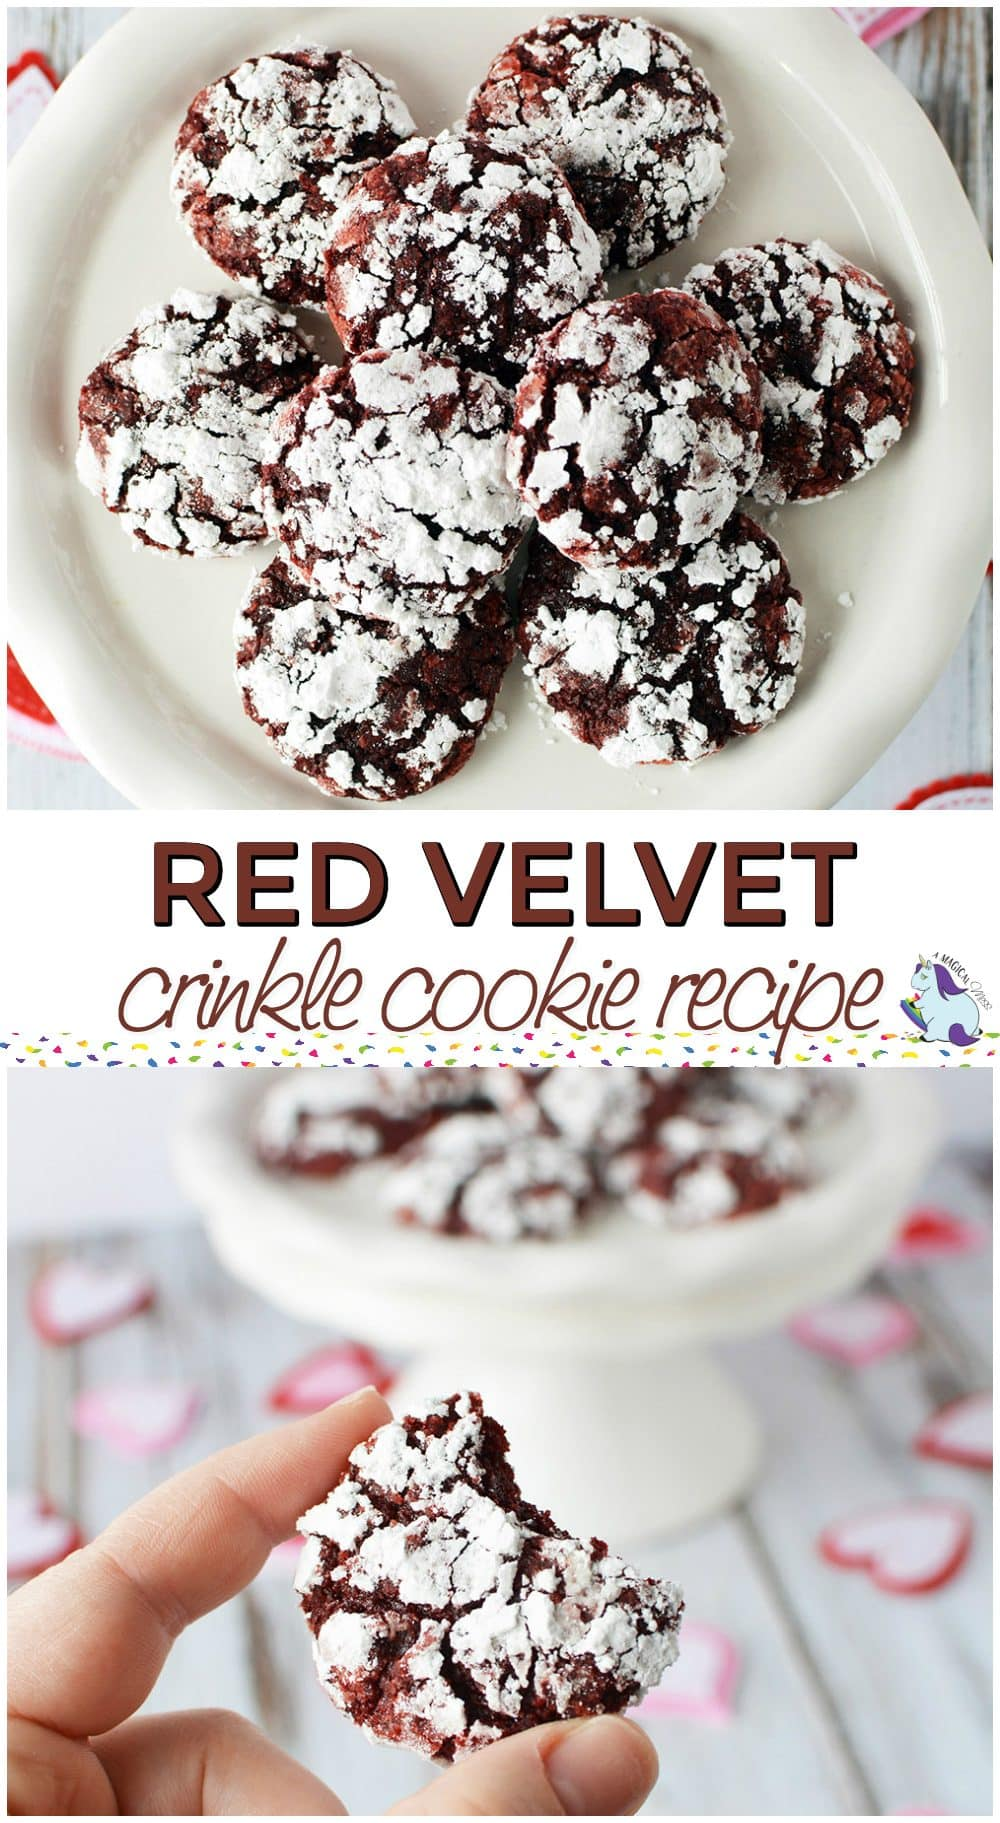 Red Velvet Crinkle Cookie Recipe - Only 4 Ingredients